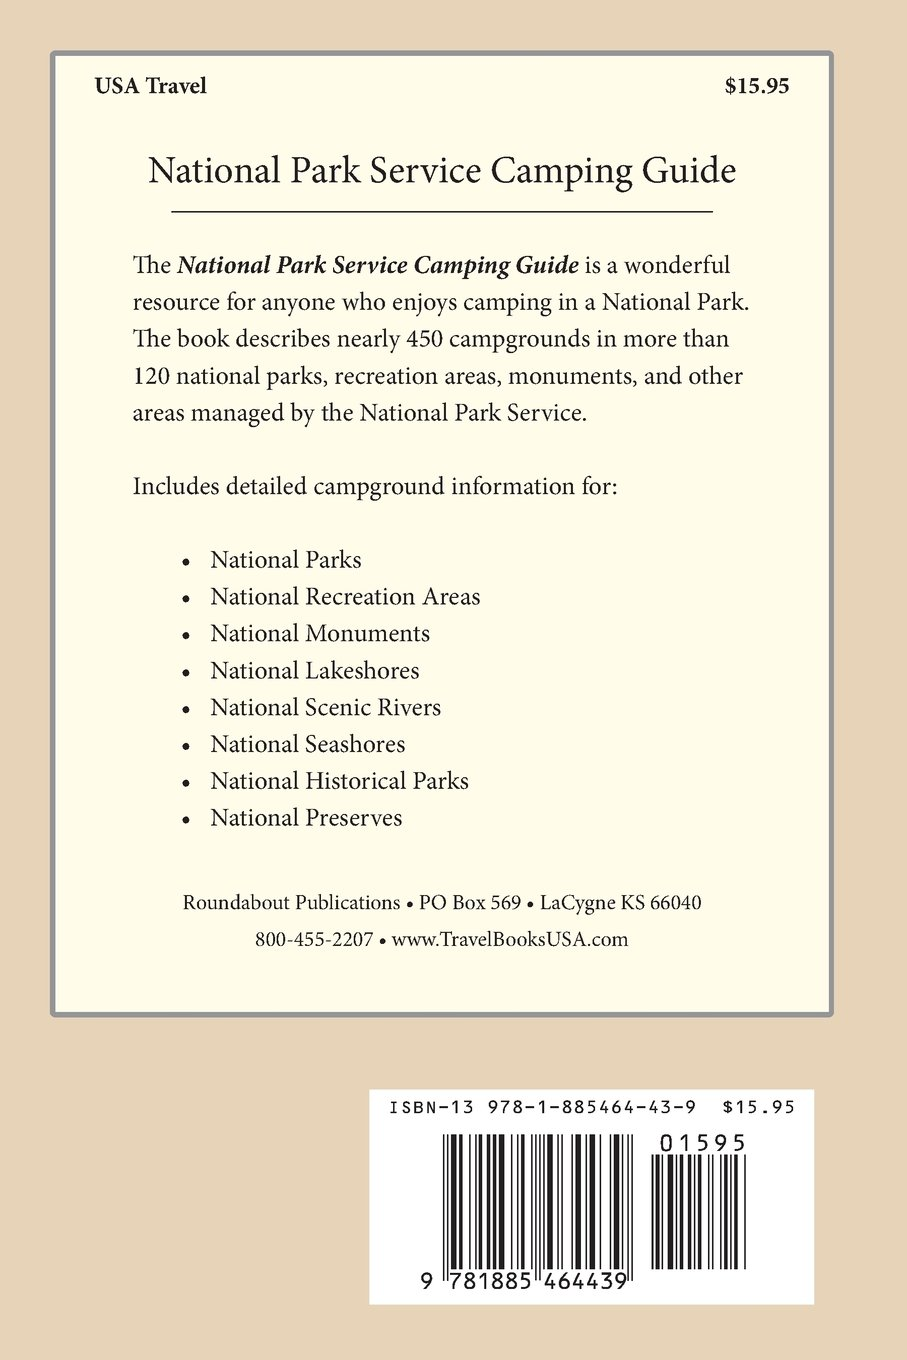 National Park Service Camping Guide, 5th Edition: William C Herow:  9781885464439: Amazon.com: Books